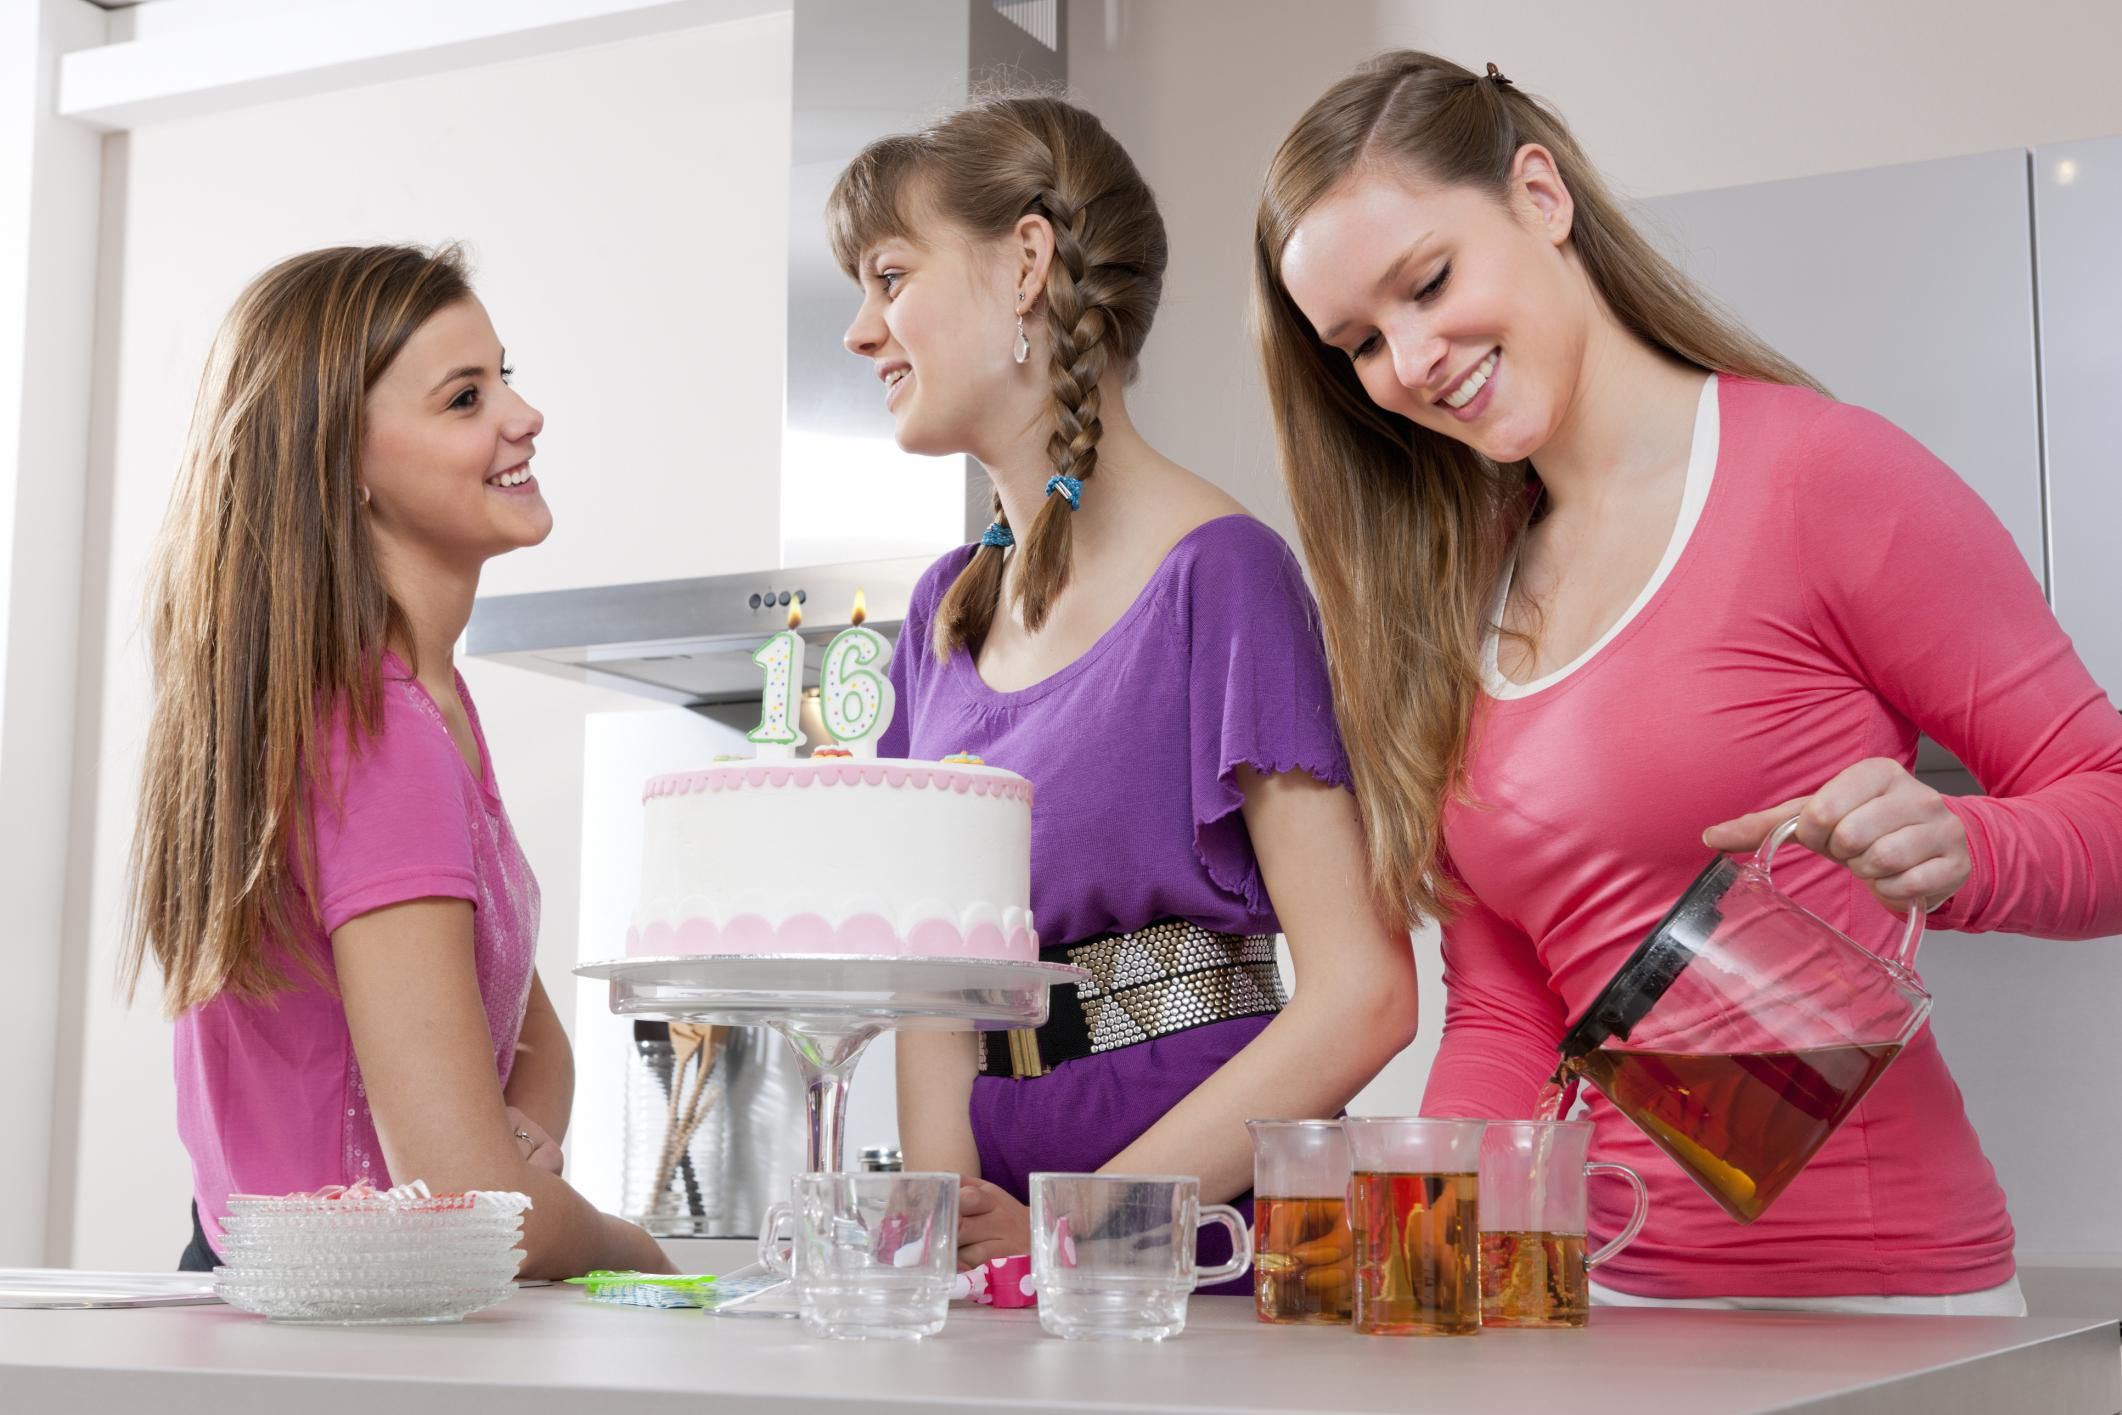 Consider These Themes When Planning A Sweet 16 Graduation Parties